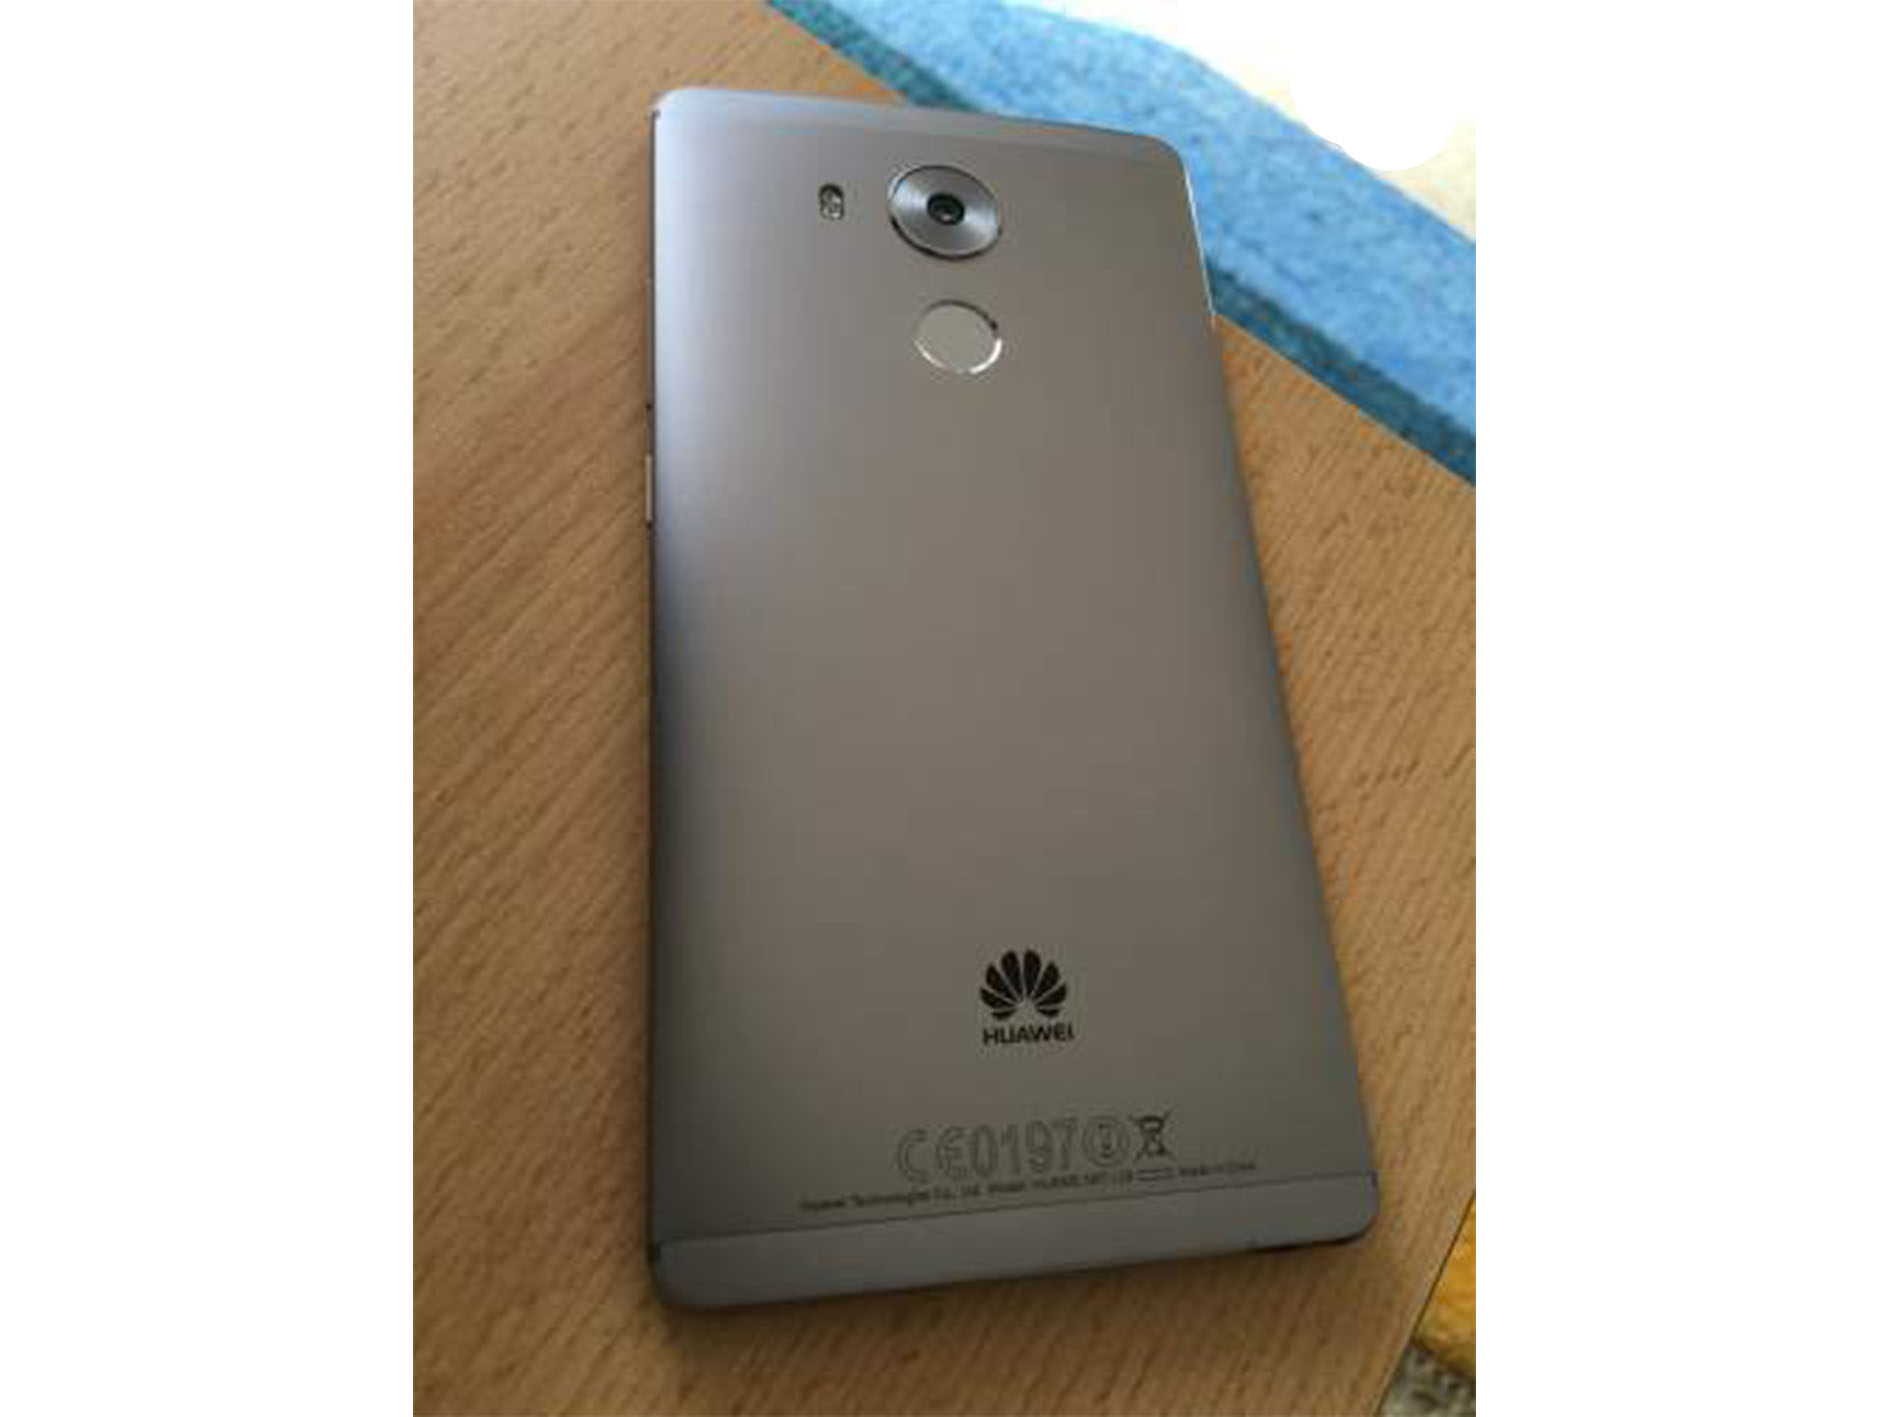 Huawei Mate 8 comme neuf